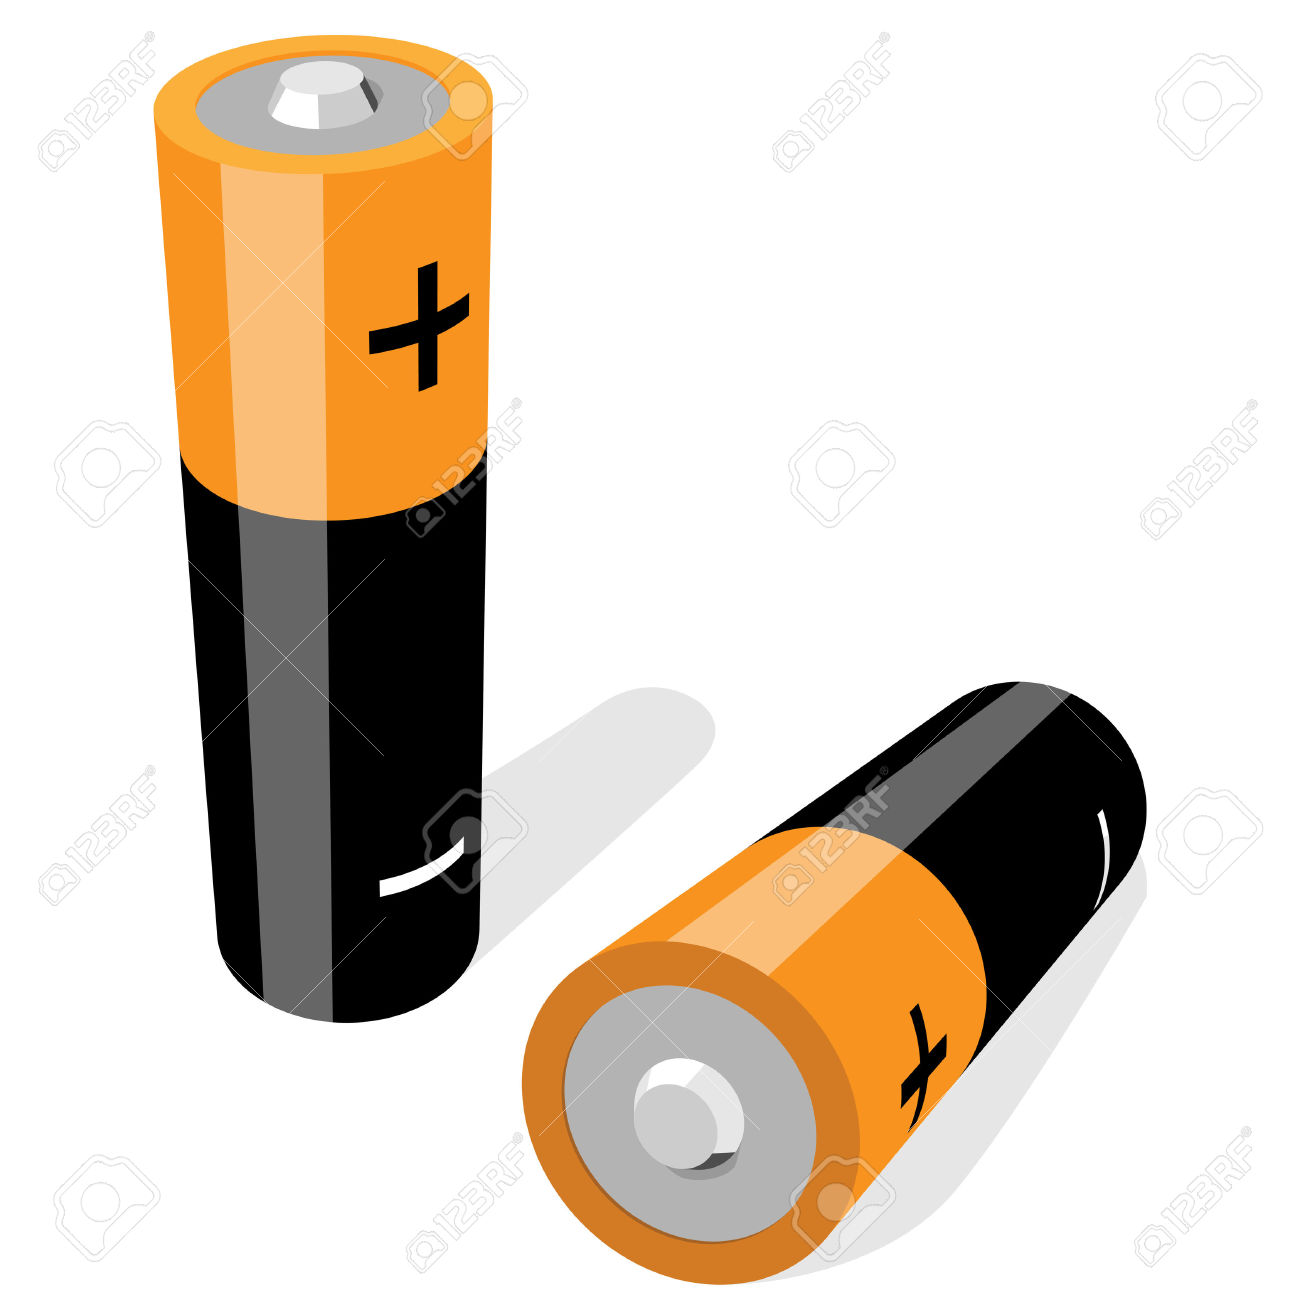 png royalty free stock Battery clipart two. Collection of batteries free.